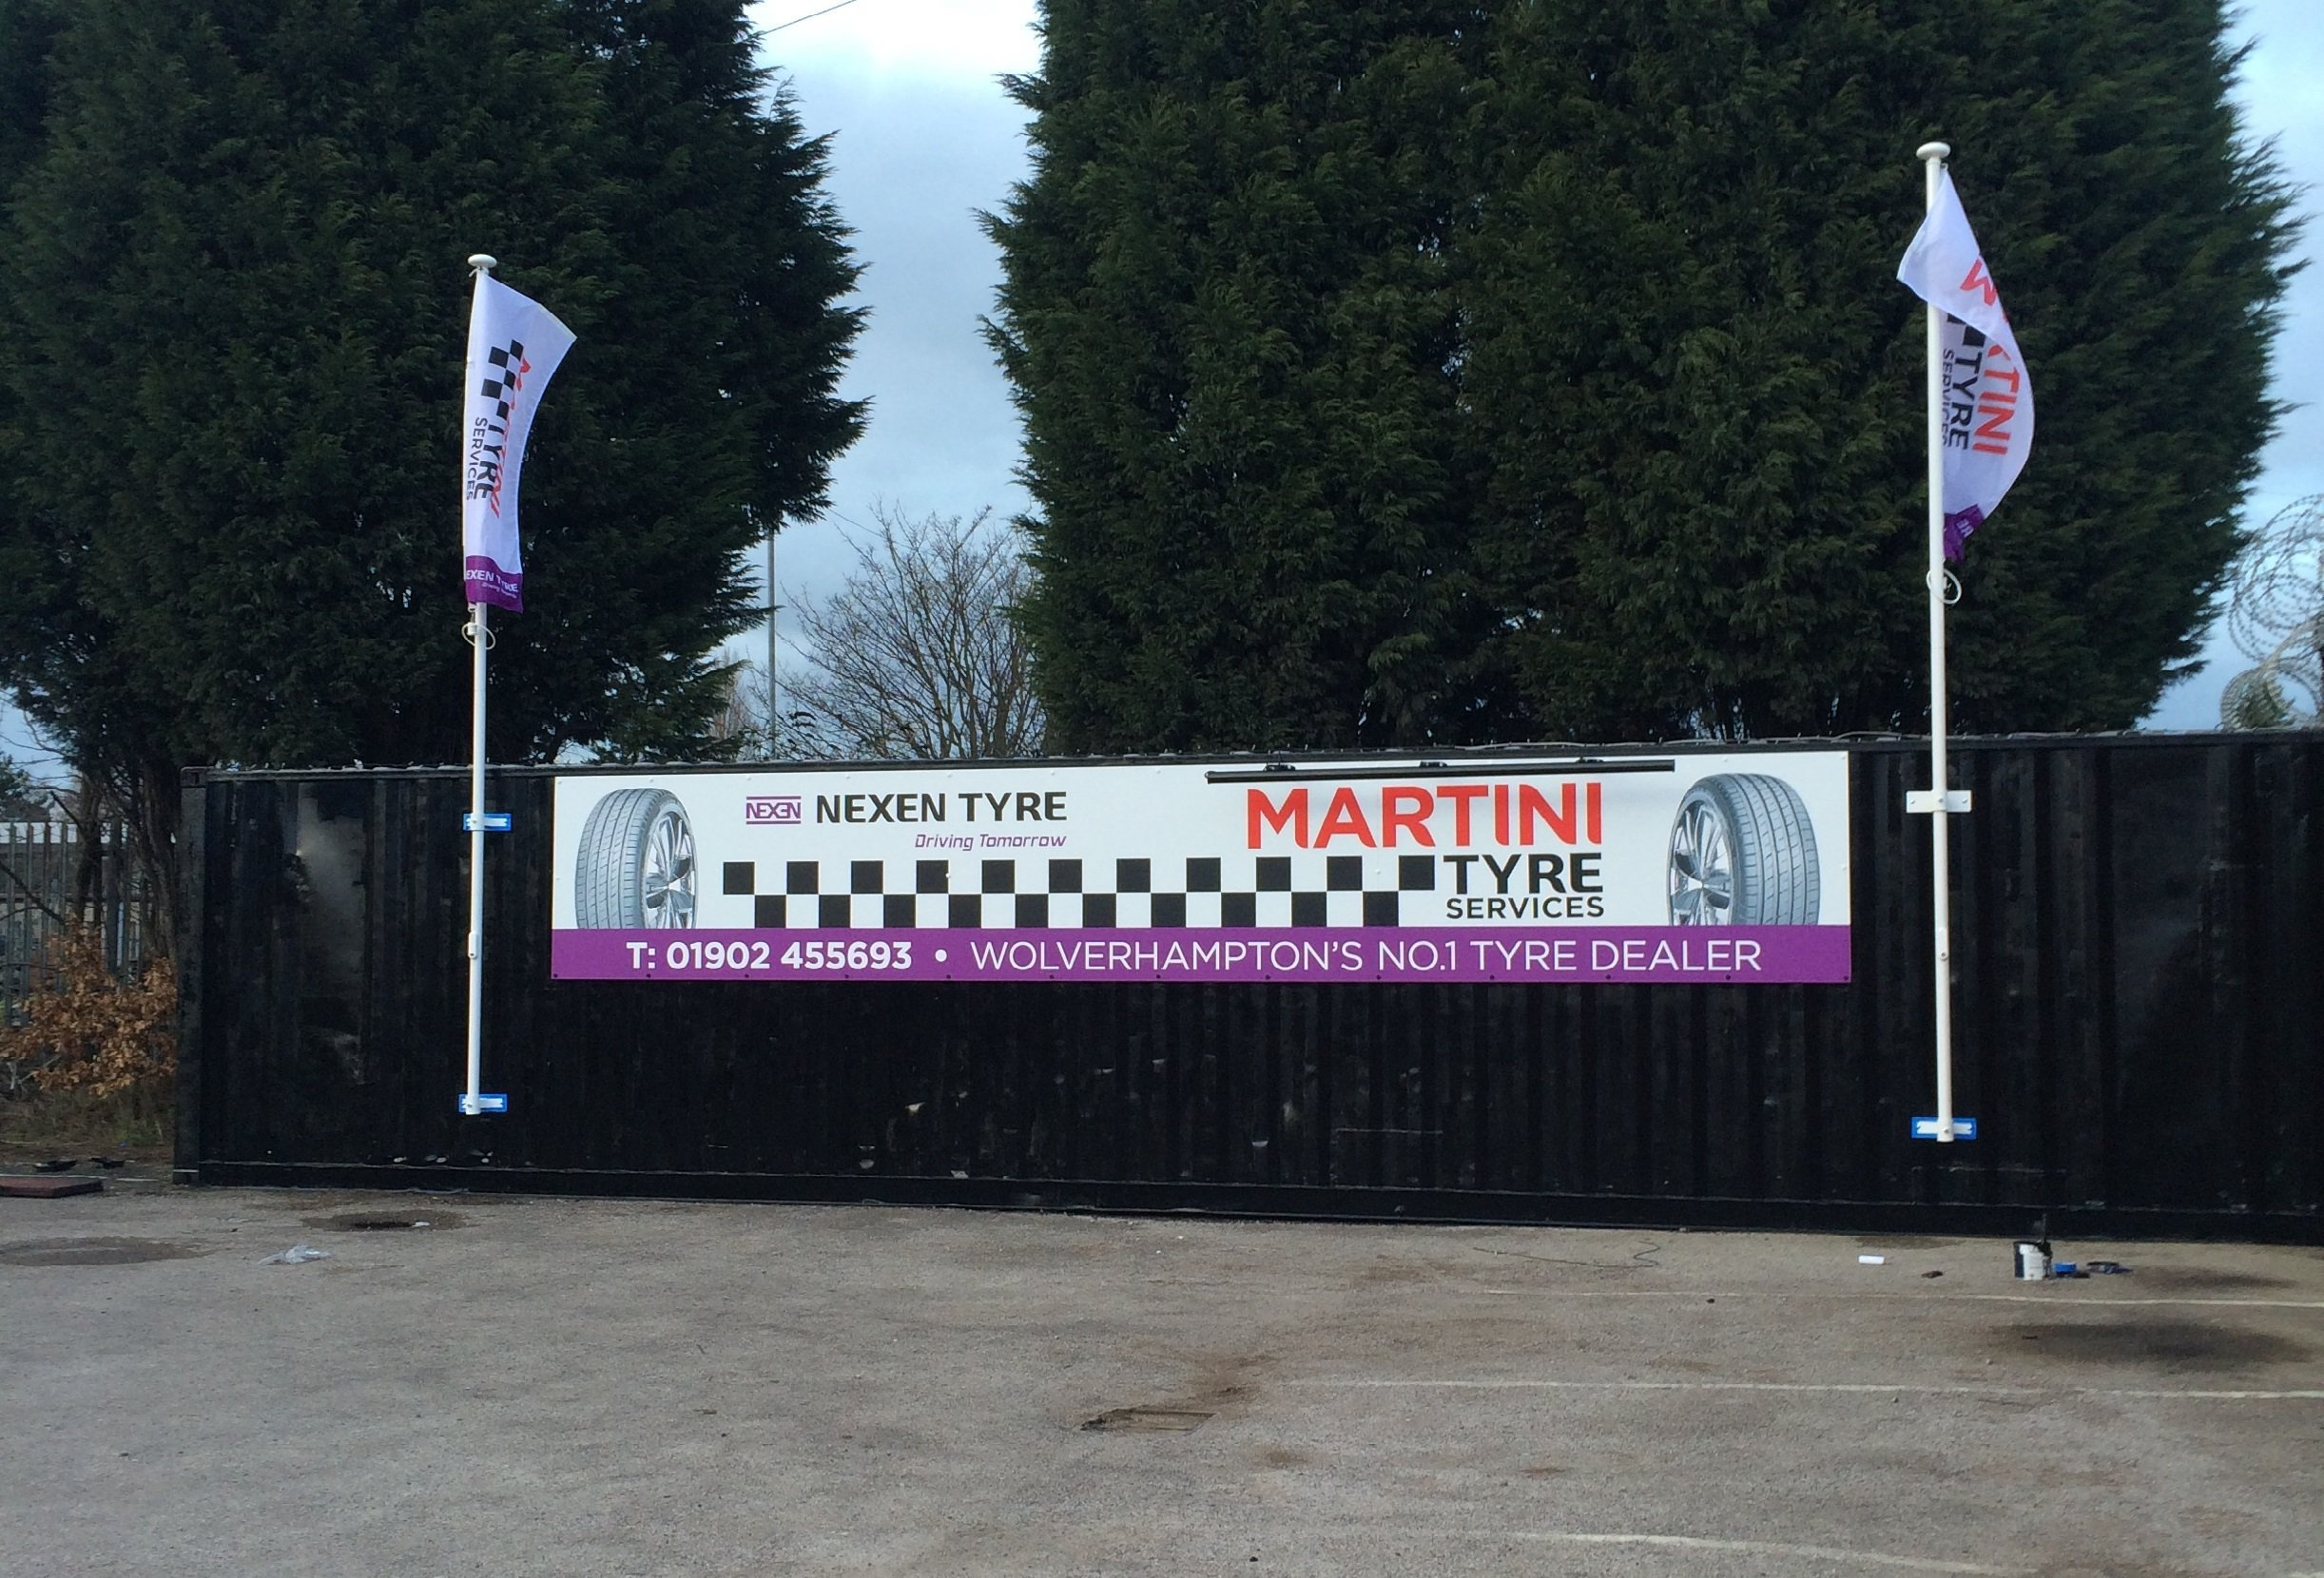 hoarding of MARTINI TYRE SERVICES